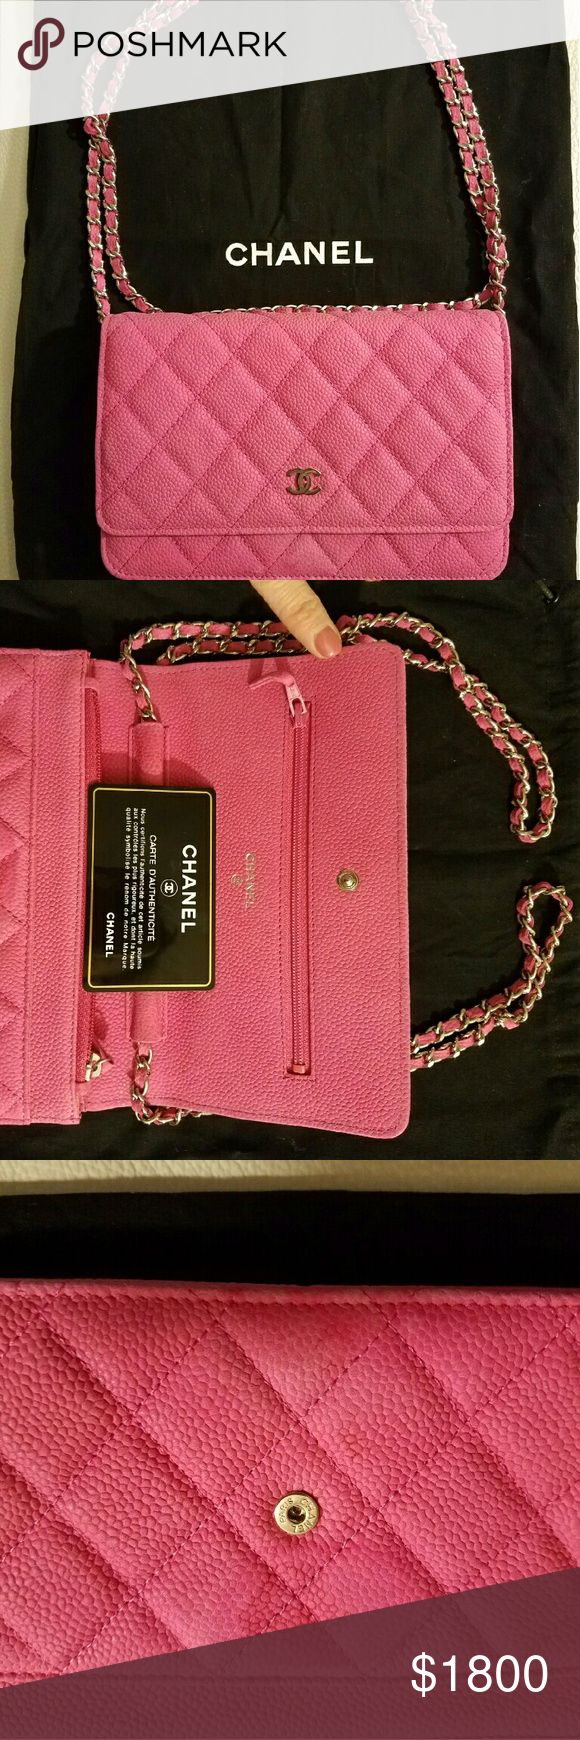 CHANEL WOC Pink Suede Bag Excellent condition. I wore once and spilled lash glue on inside of flap (show in picture). Comes with Authenticity Card, Original Price Tag, Cloth Bag and Box. CHANEL Bags Crossbody Bags